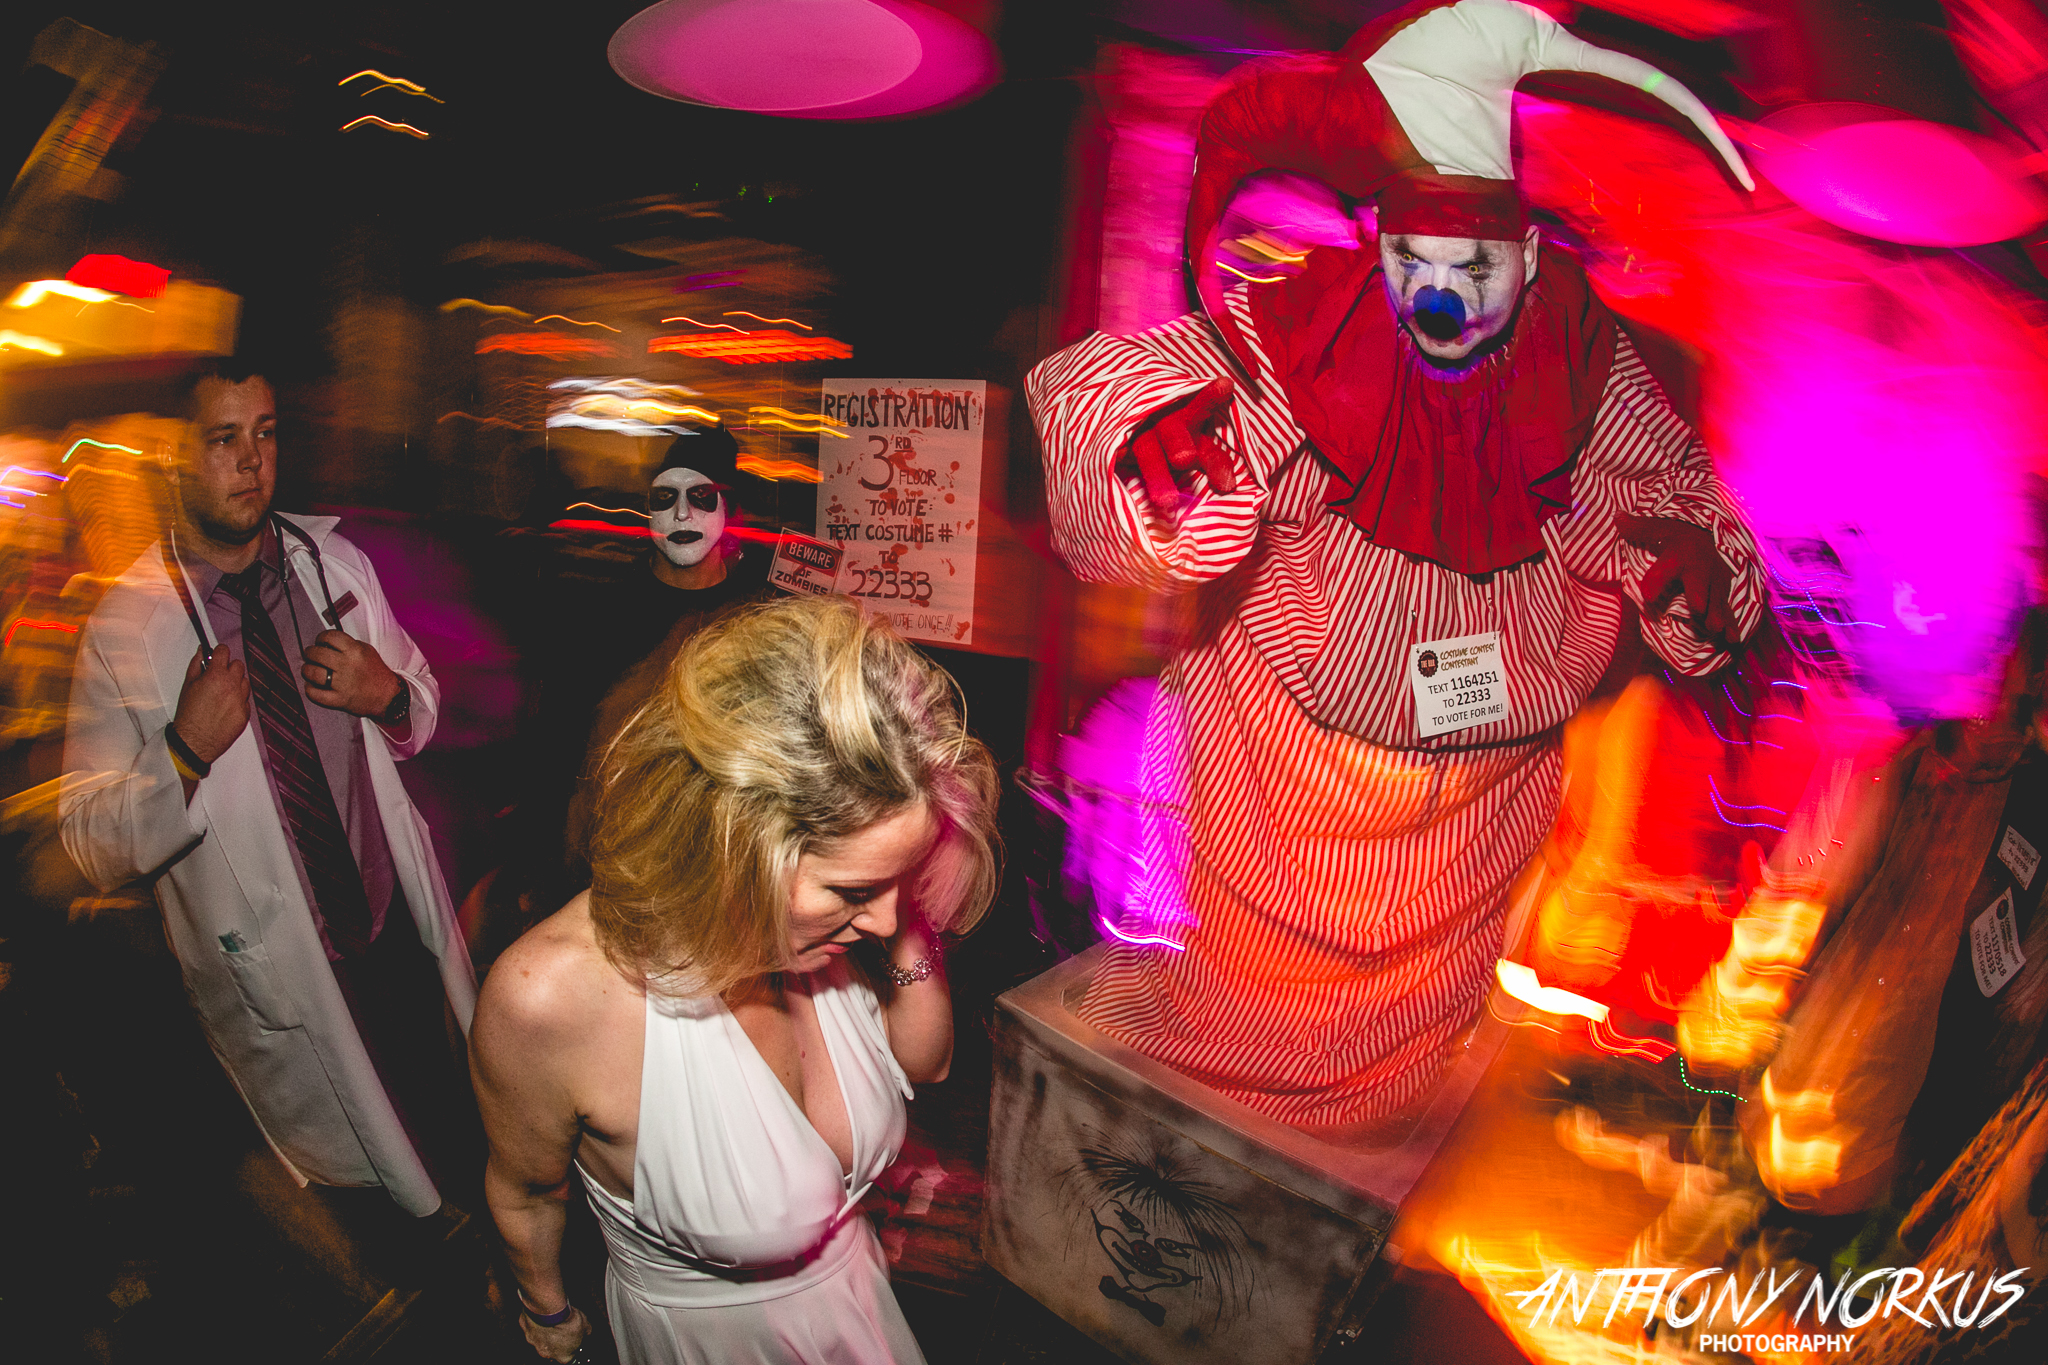 Halloween Party The Bob 2020 Grand Rapids Halloween Hoopla: The Local Spins guide to masquerade mayhem